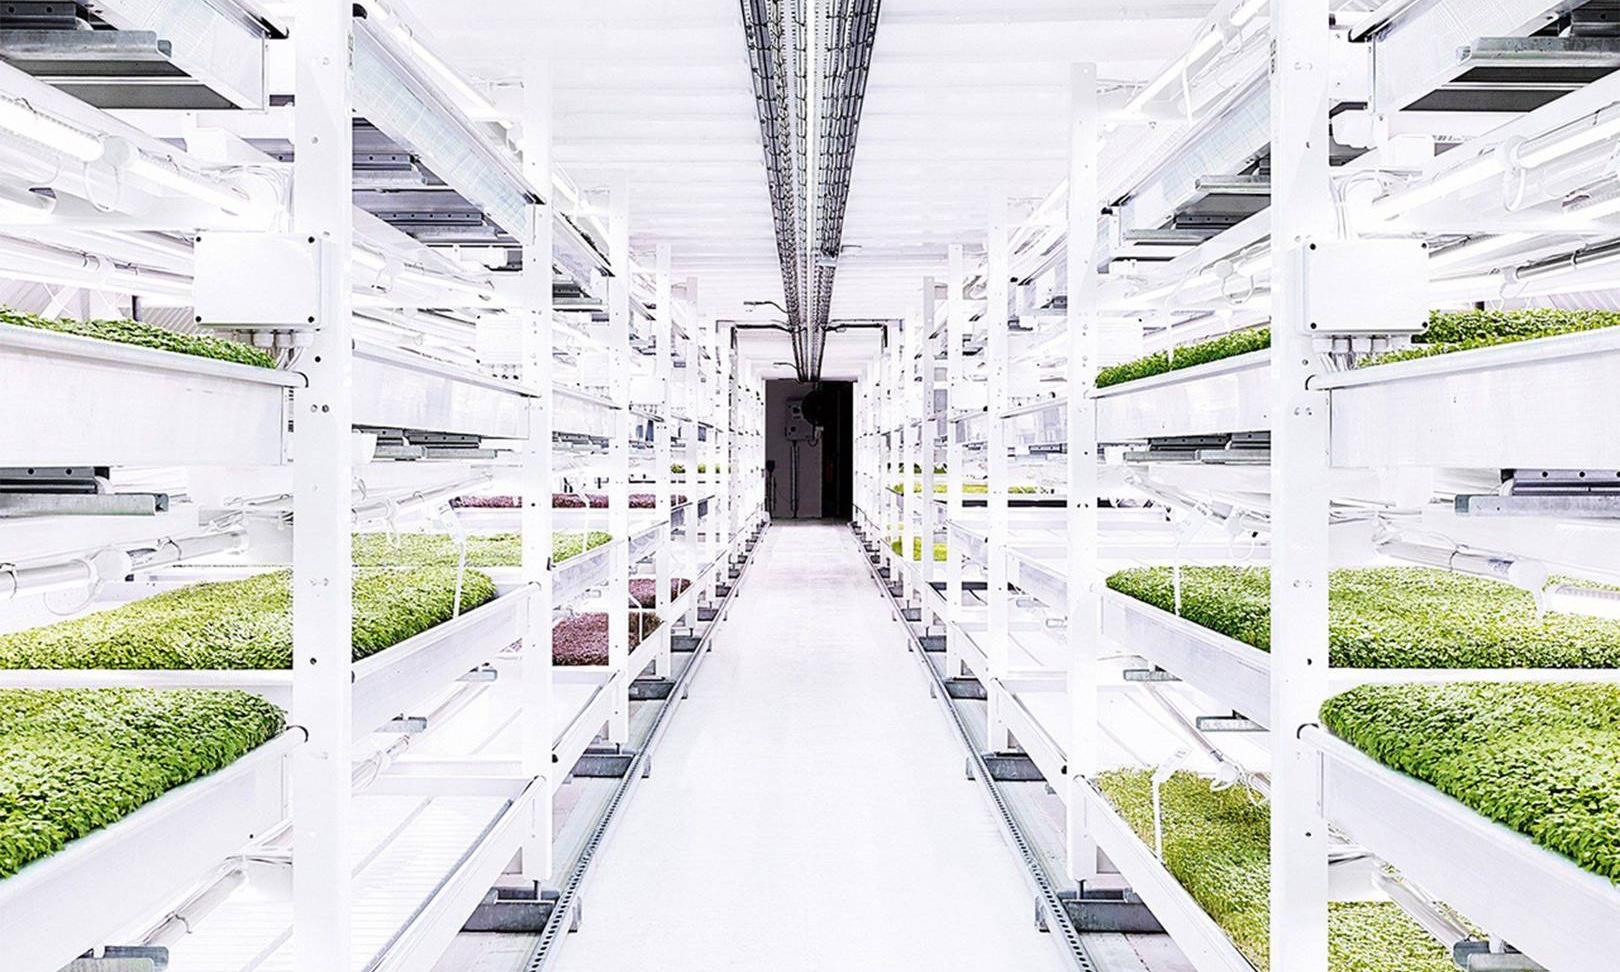 On rooftops and in tunnels, city farms lead food revolution